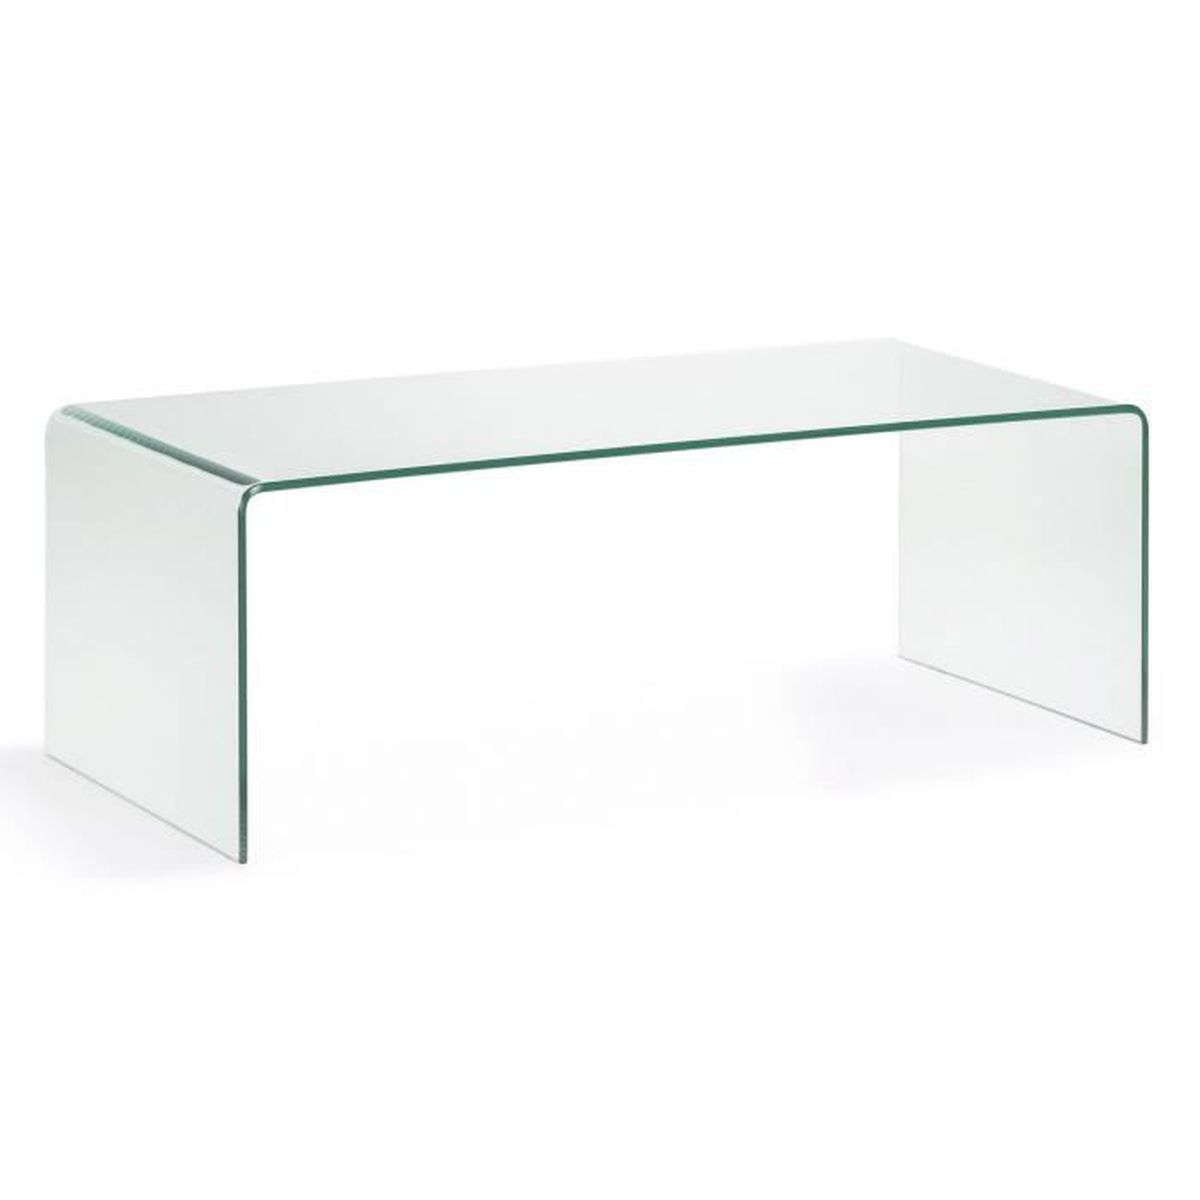 Table Basse Burano - Achat / Vente table basse Table Basse Burano